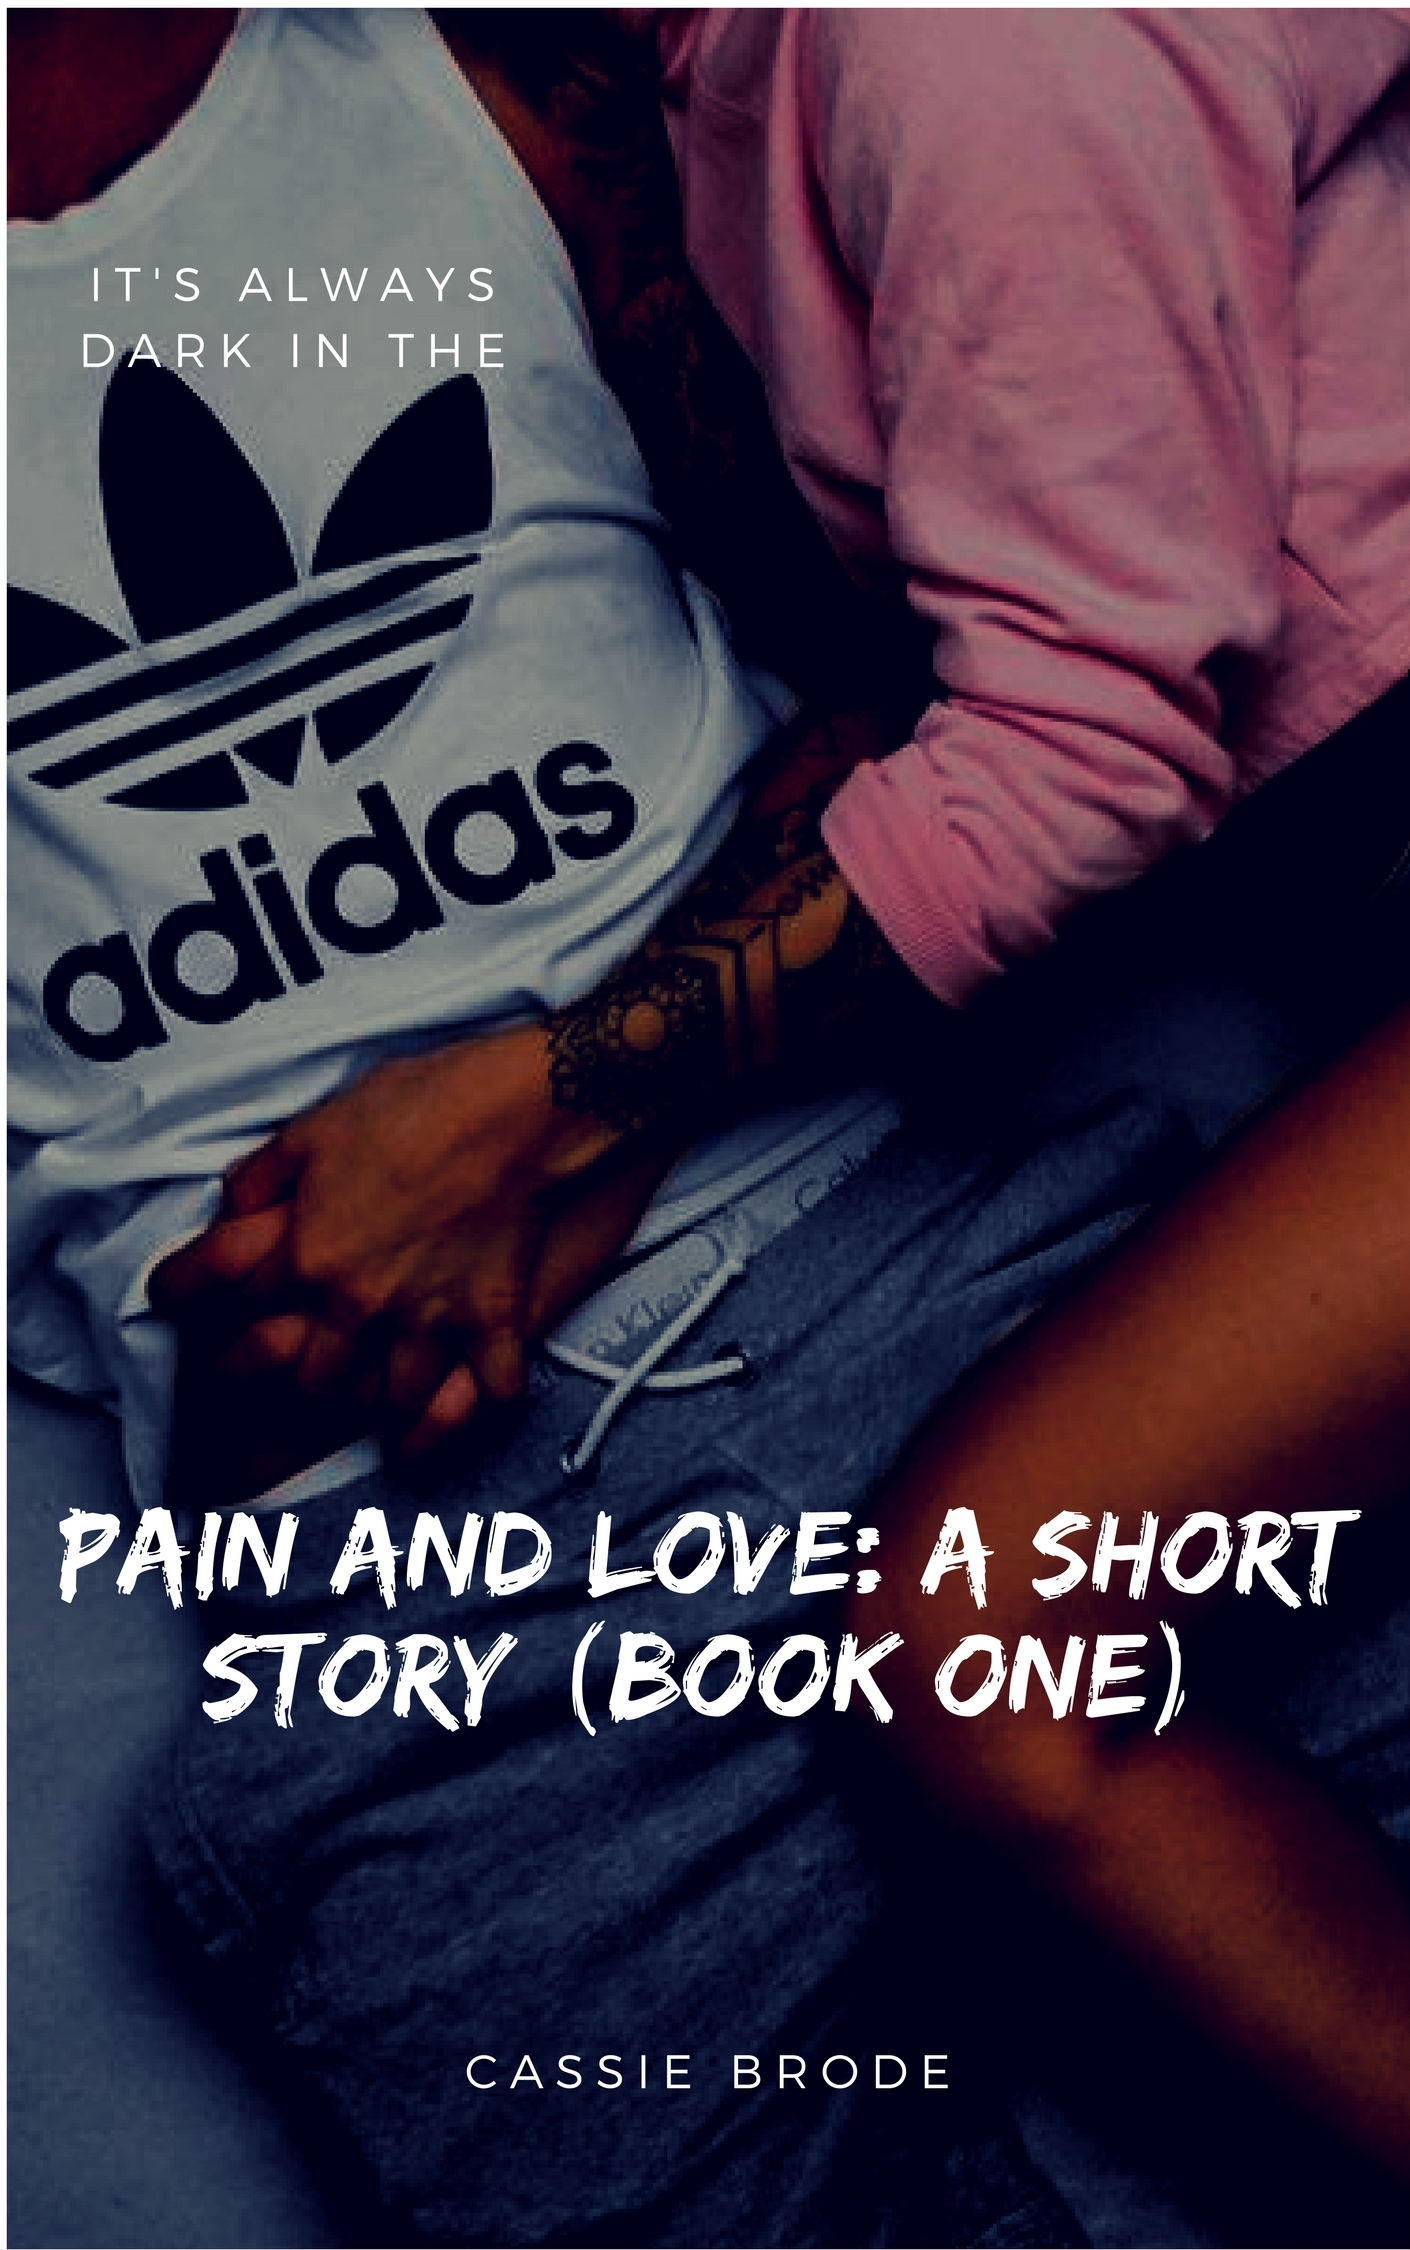 Pain And Love: A Short Story (Book One)